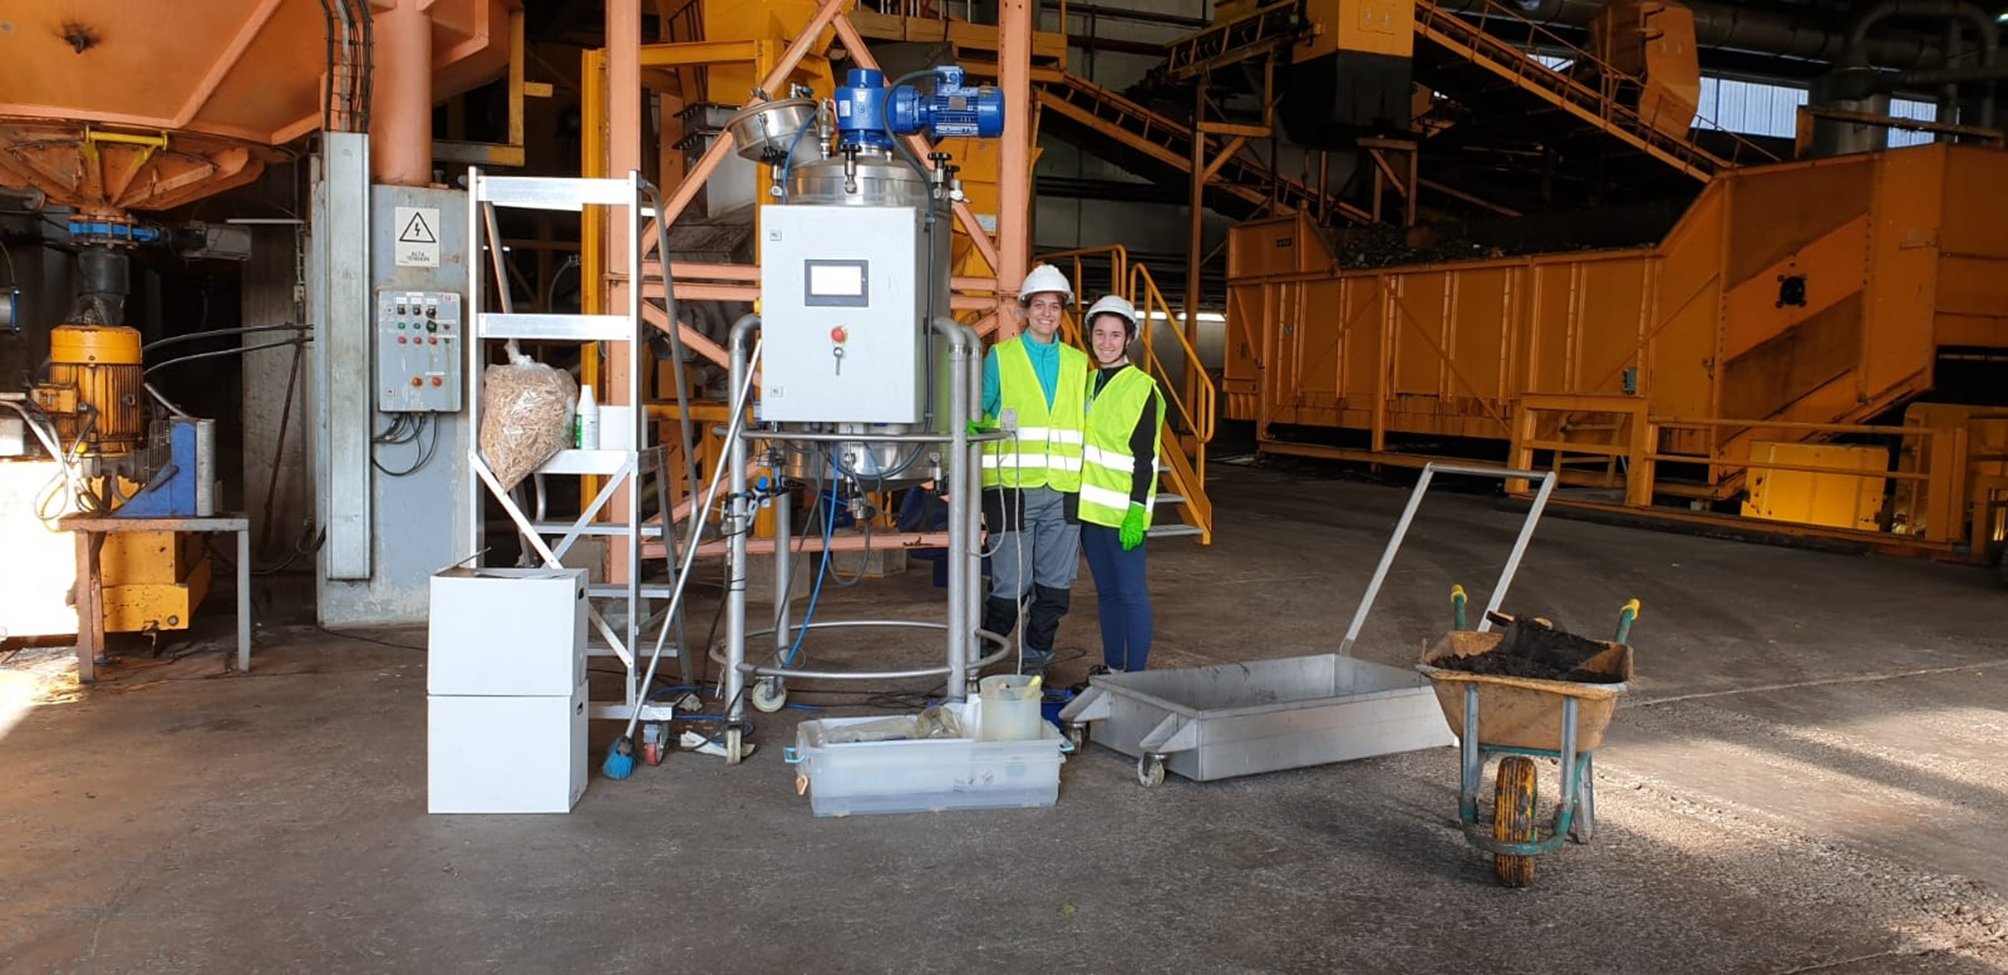 A Novel Alternative For Digestate Valorisation Is Under Development In A Demonstration Plant In Granollers, Spain.